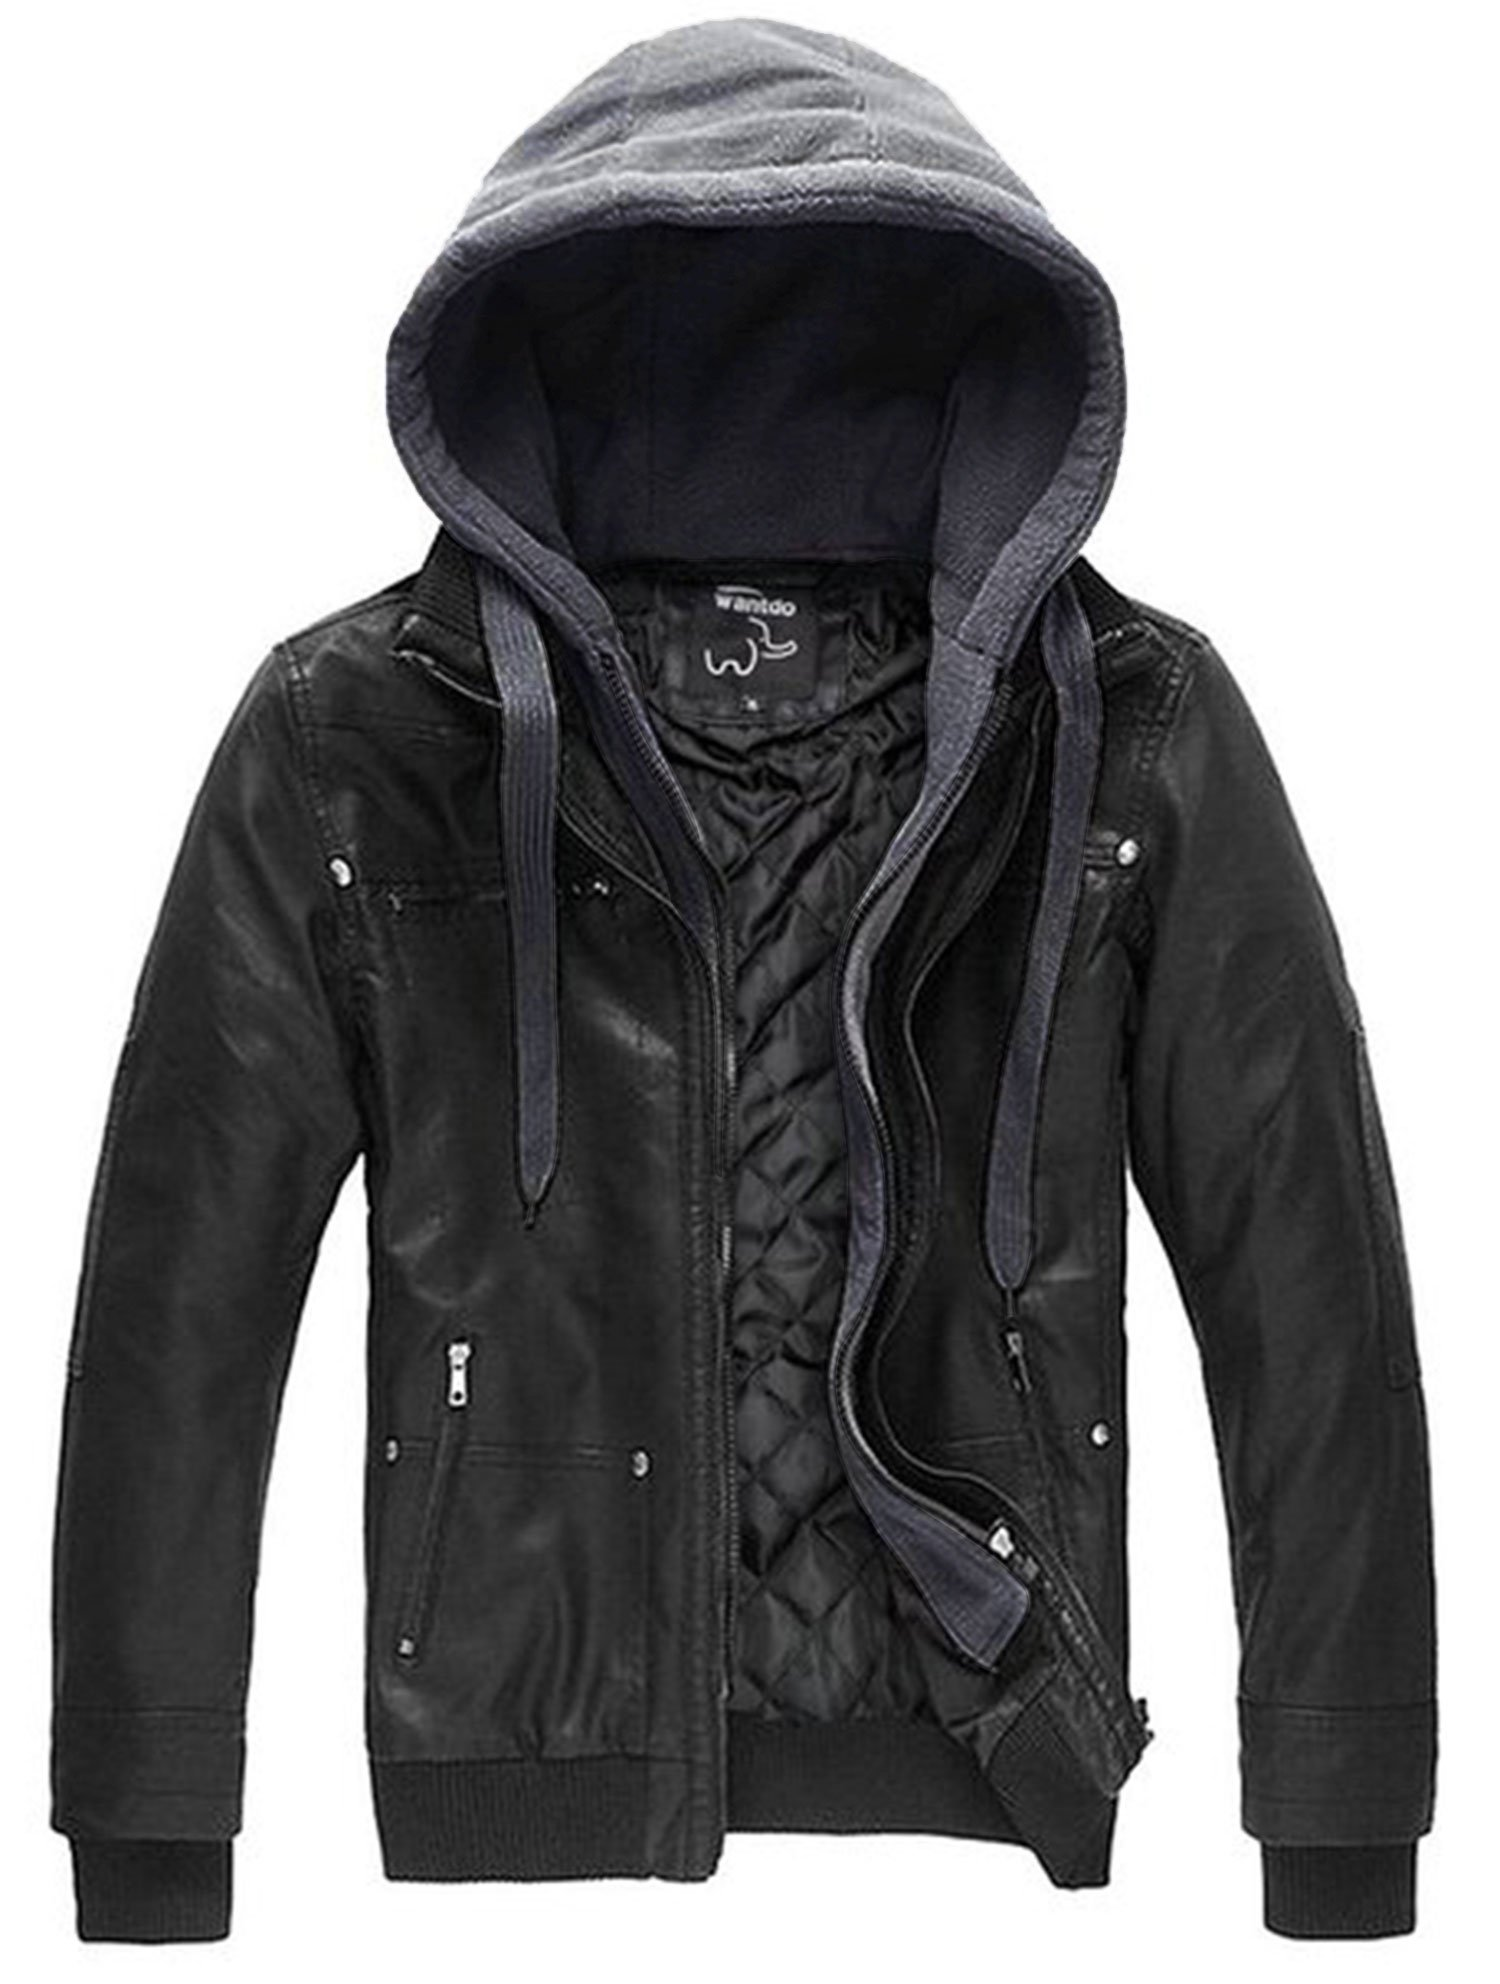 Wantdo Men's Leather Jacket with Removable Hood US X-Large Black(Heavy) by Wantdo